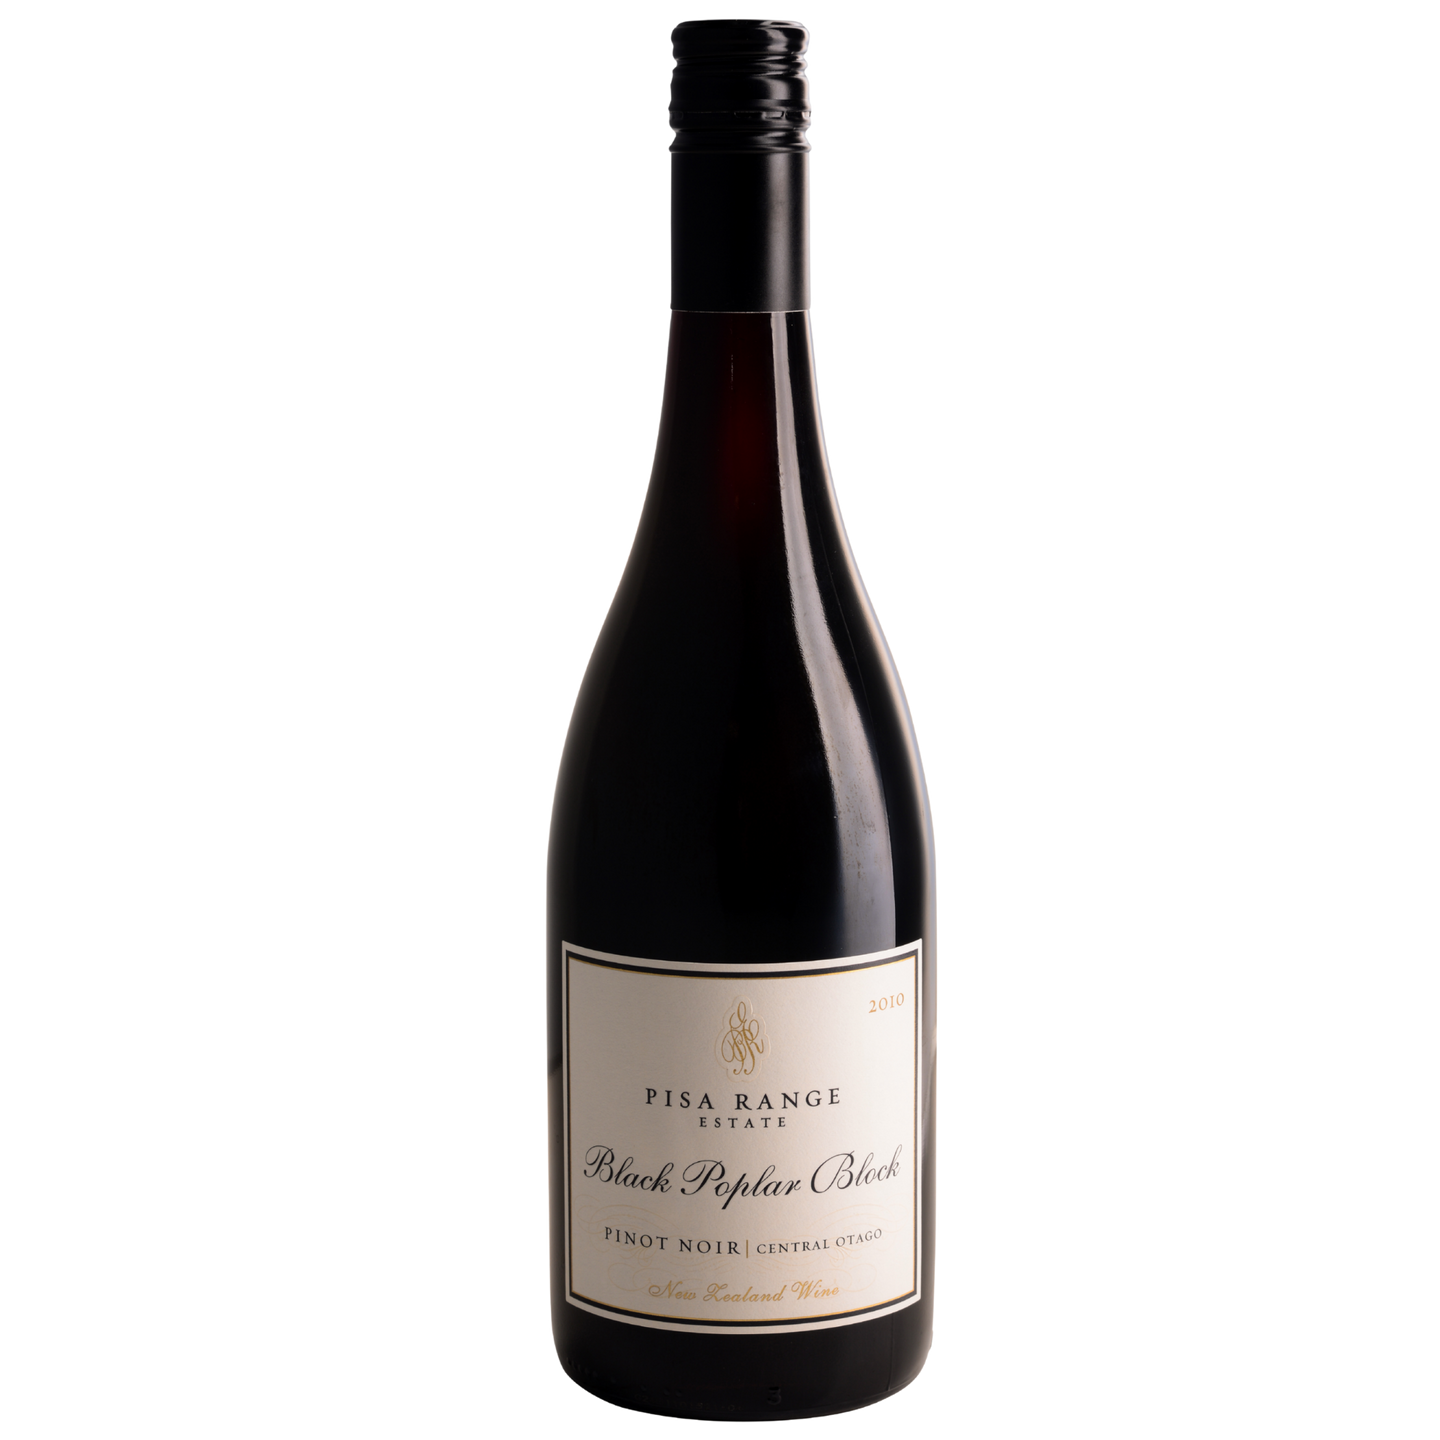 2010 Pisa Range Estate Black Poplar Block Pinot Noir